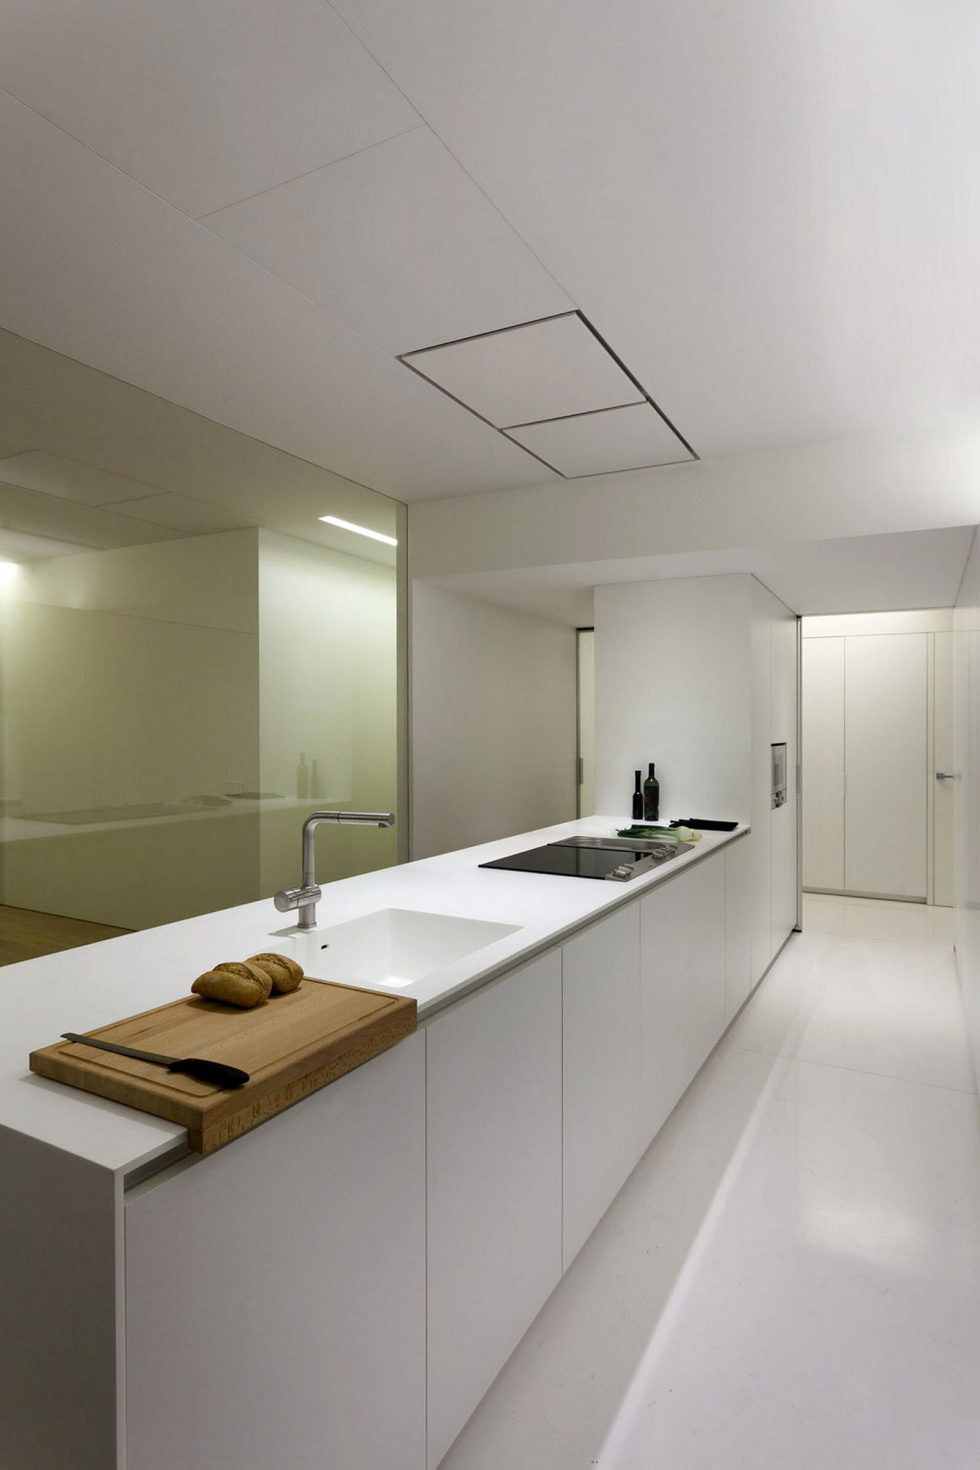 Contemporarily Designed Apartment In Valencia by Fran Silvestre Arquitectos 12